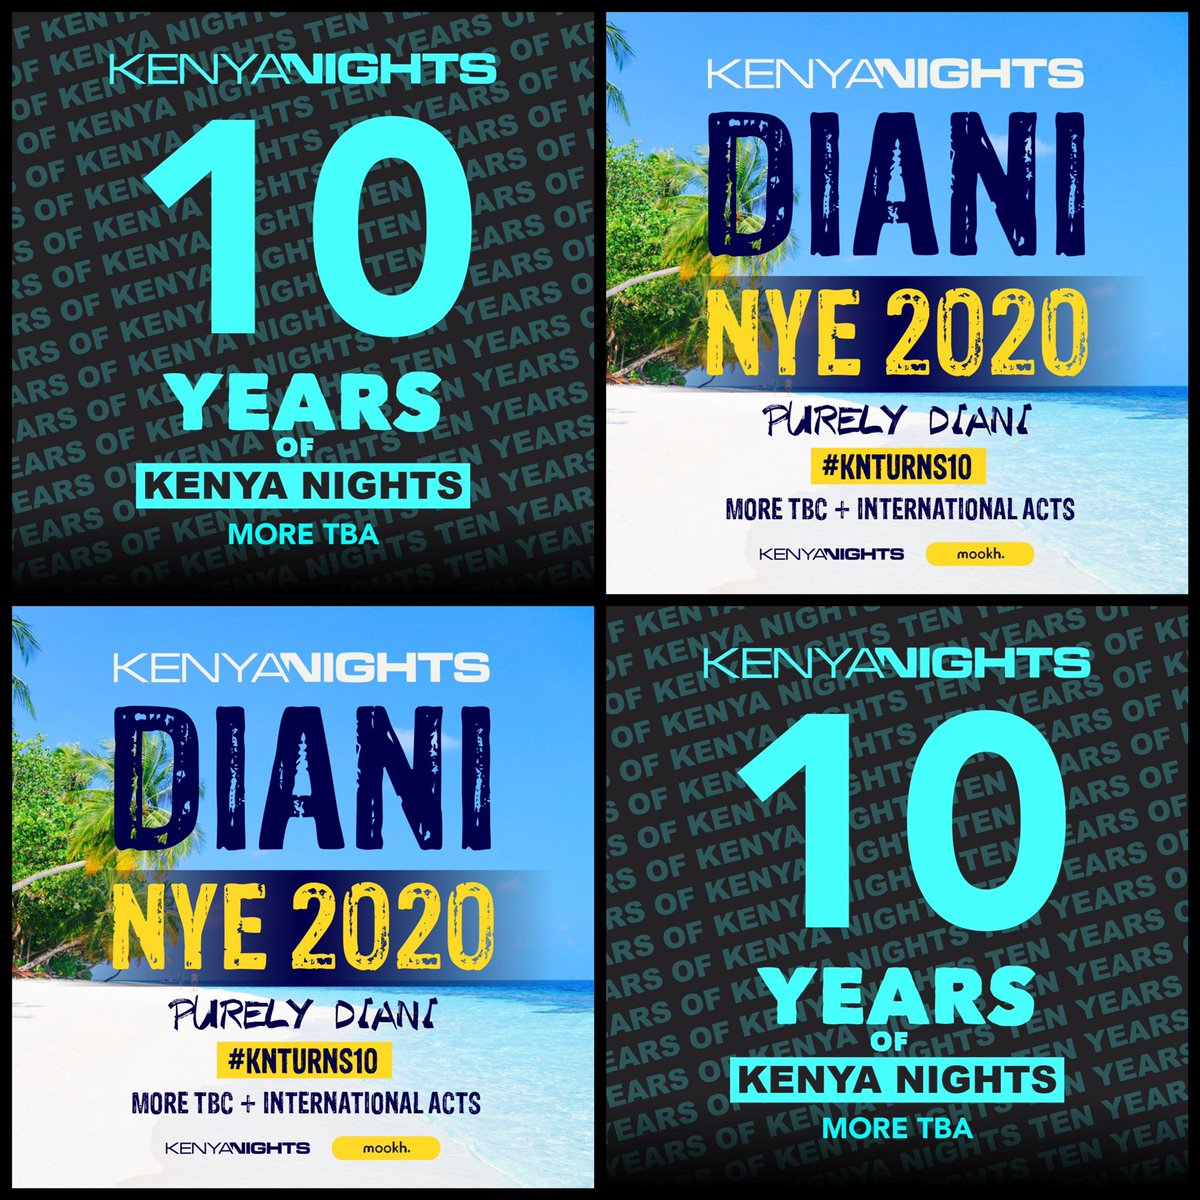 500 retweets and we'll release the international acts for the 10th Anniversary and NYE Diani  #KenyaNights #Nairobi #Diani #Kenya #KNTurns10 #NYEDiani<br>http://pic.twitter.com/wWMIPlRnN2